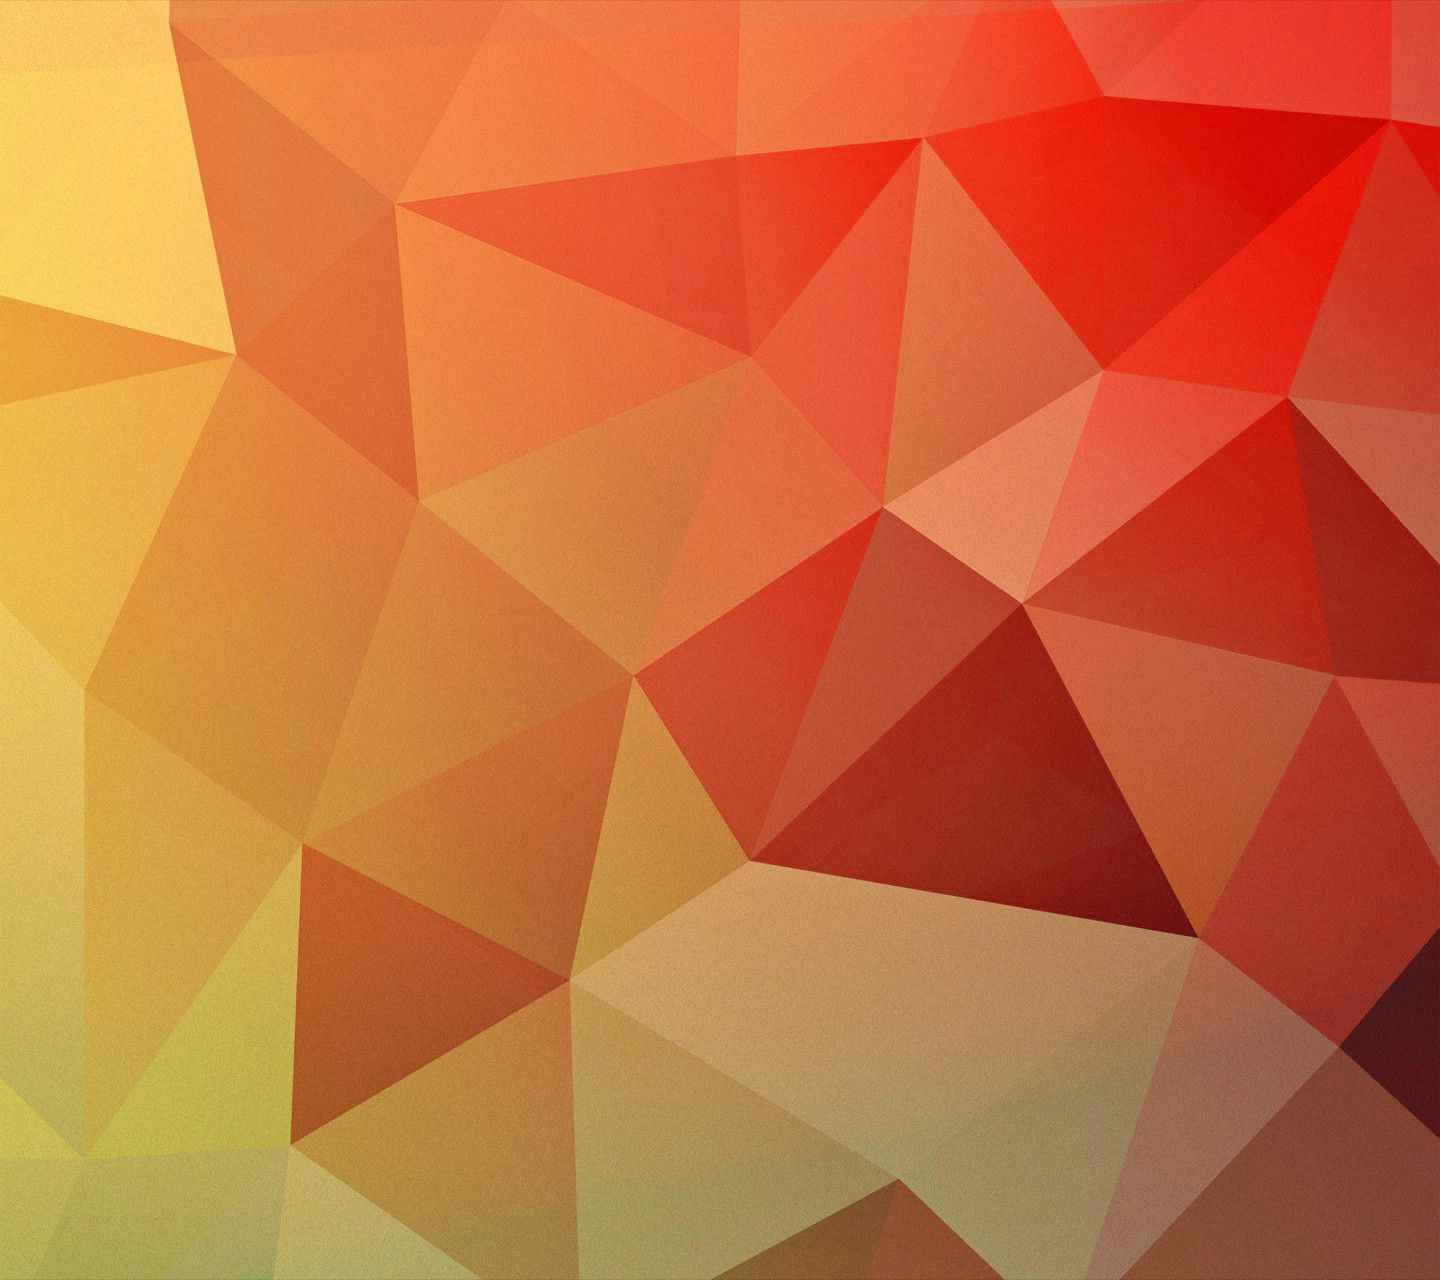 1440x1280 how to - How can I create a polygon pattern in Photoshop? - Graphic ...